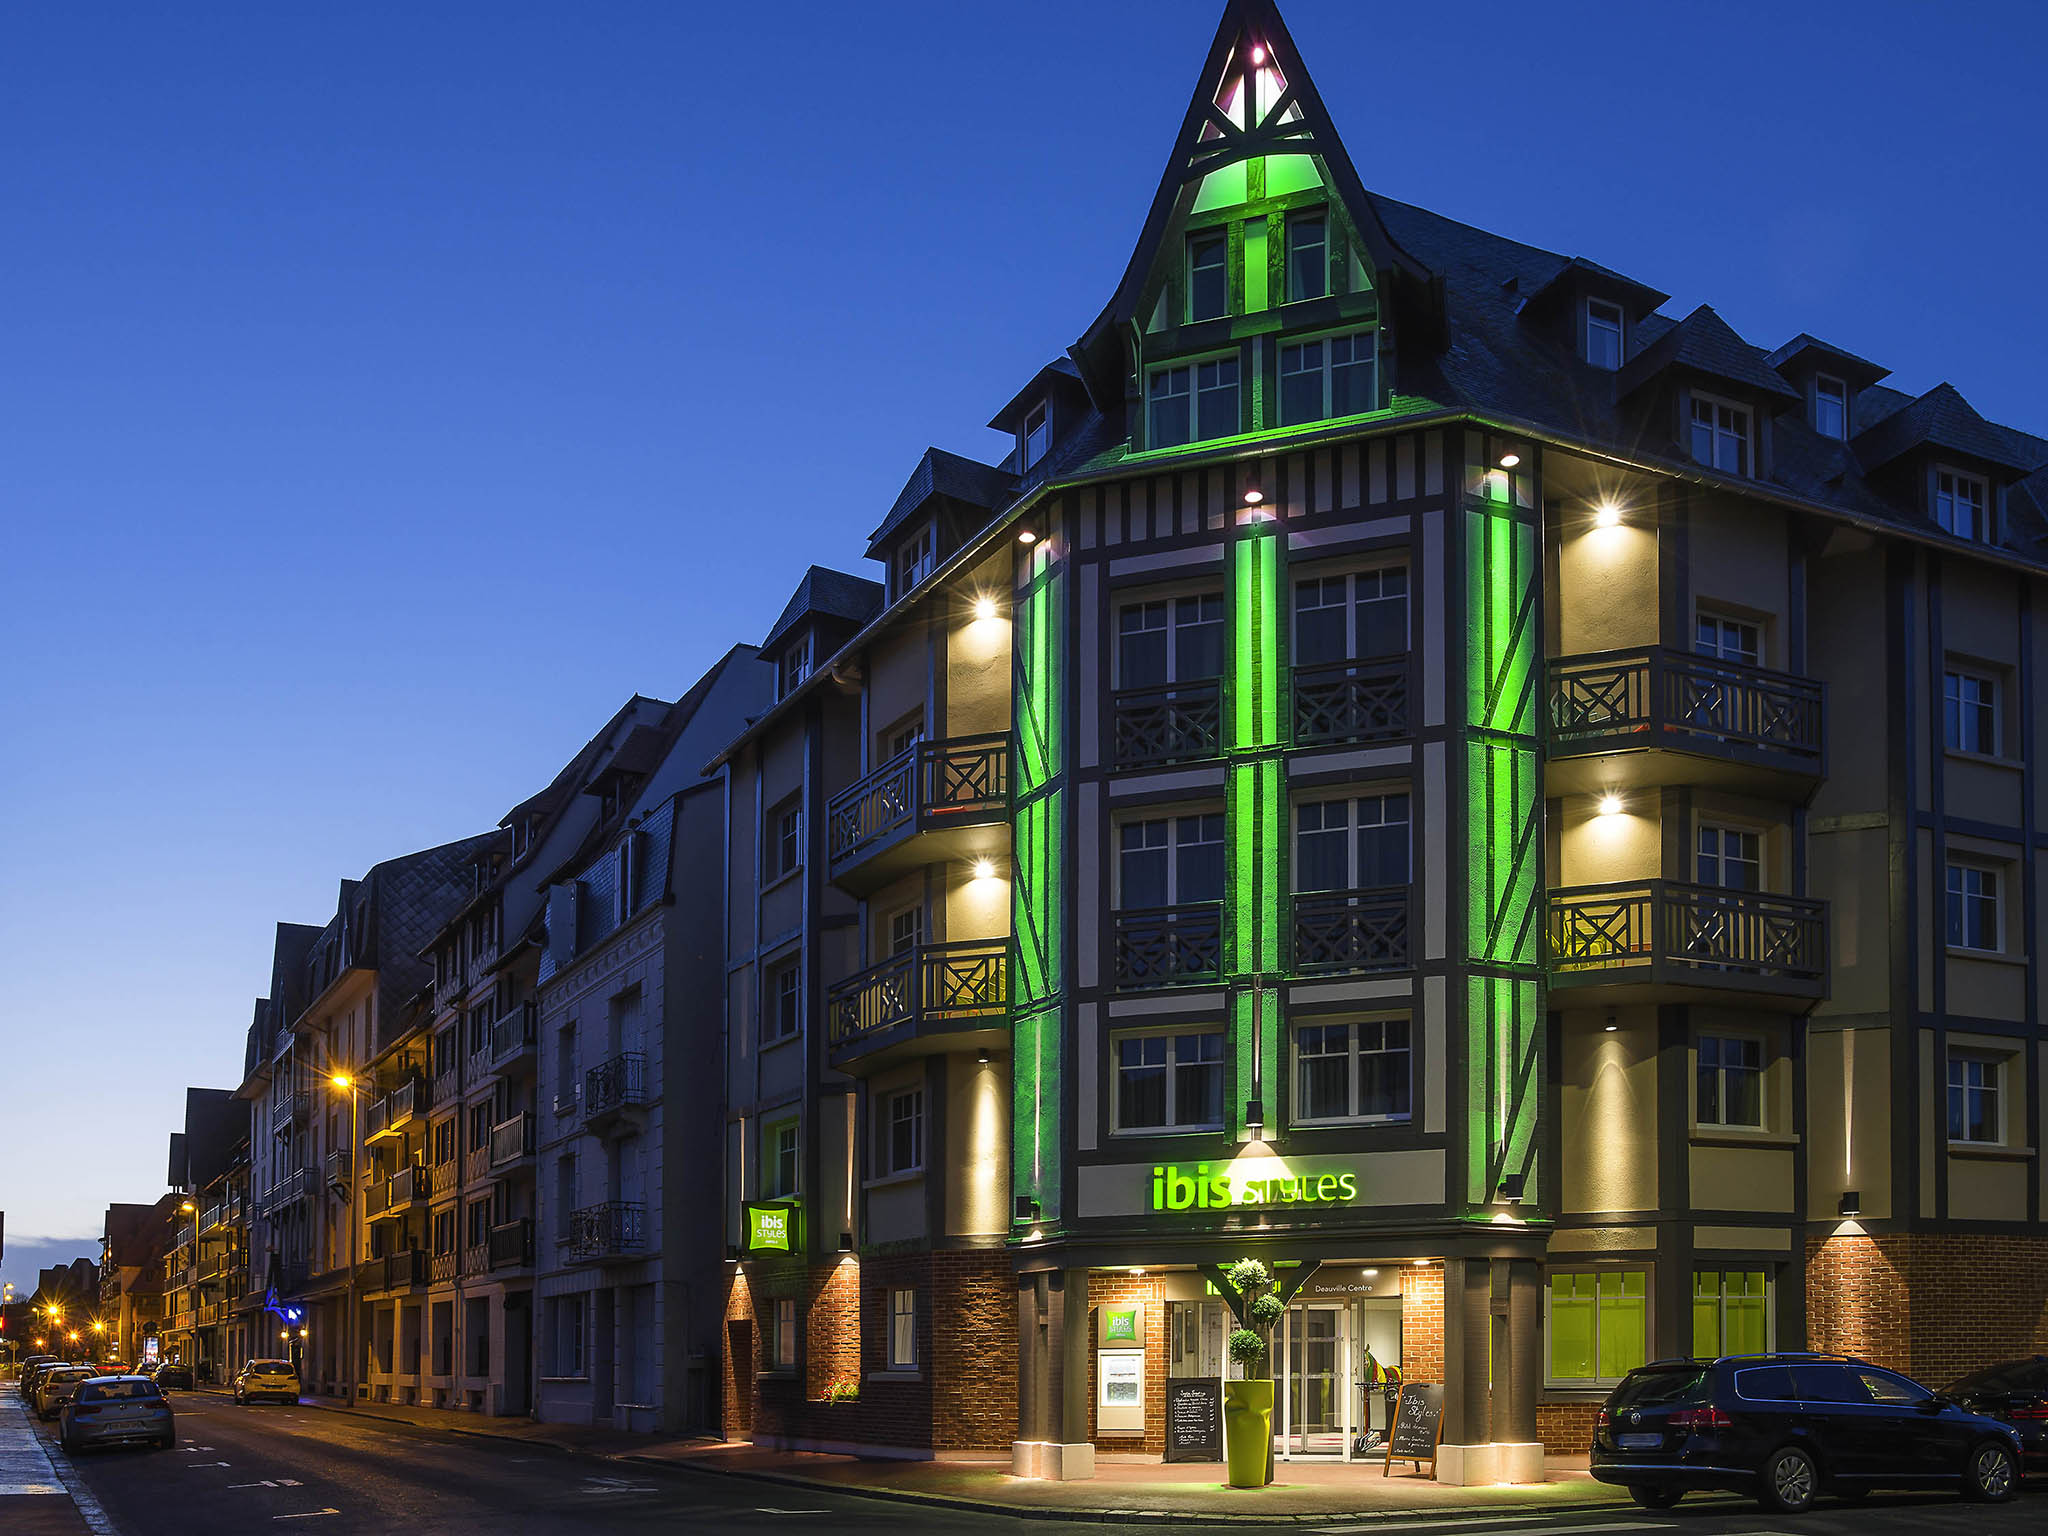 H tel deauville ibis styles deauville centre for Hotels deauville